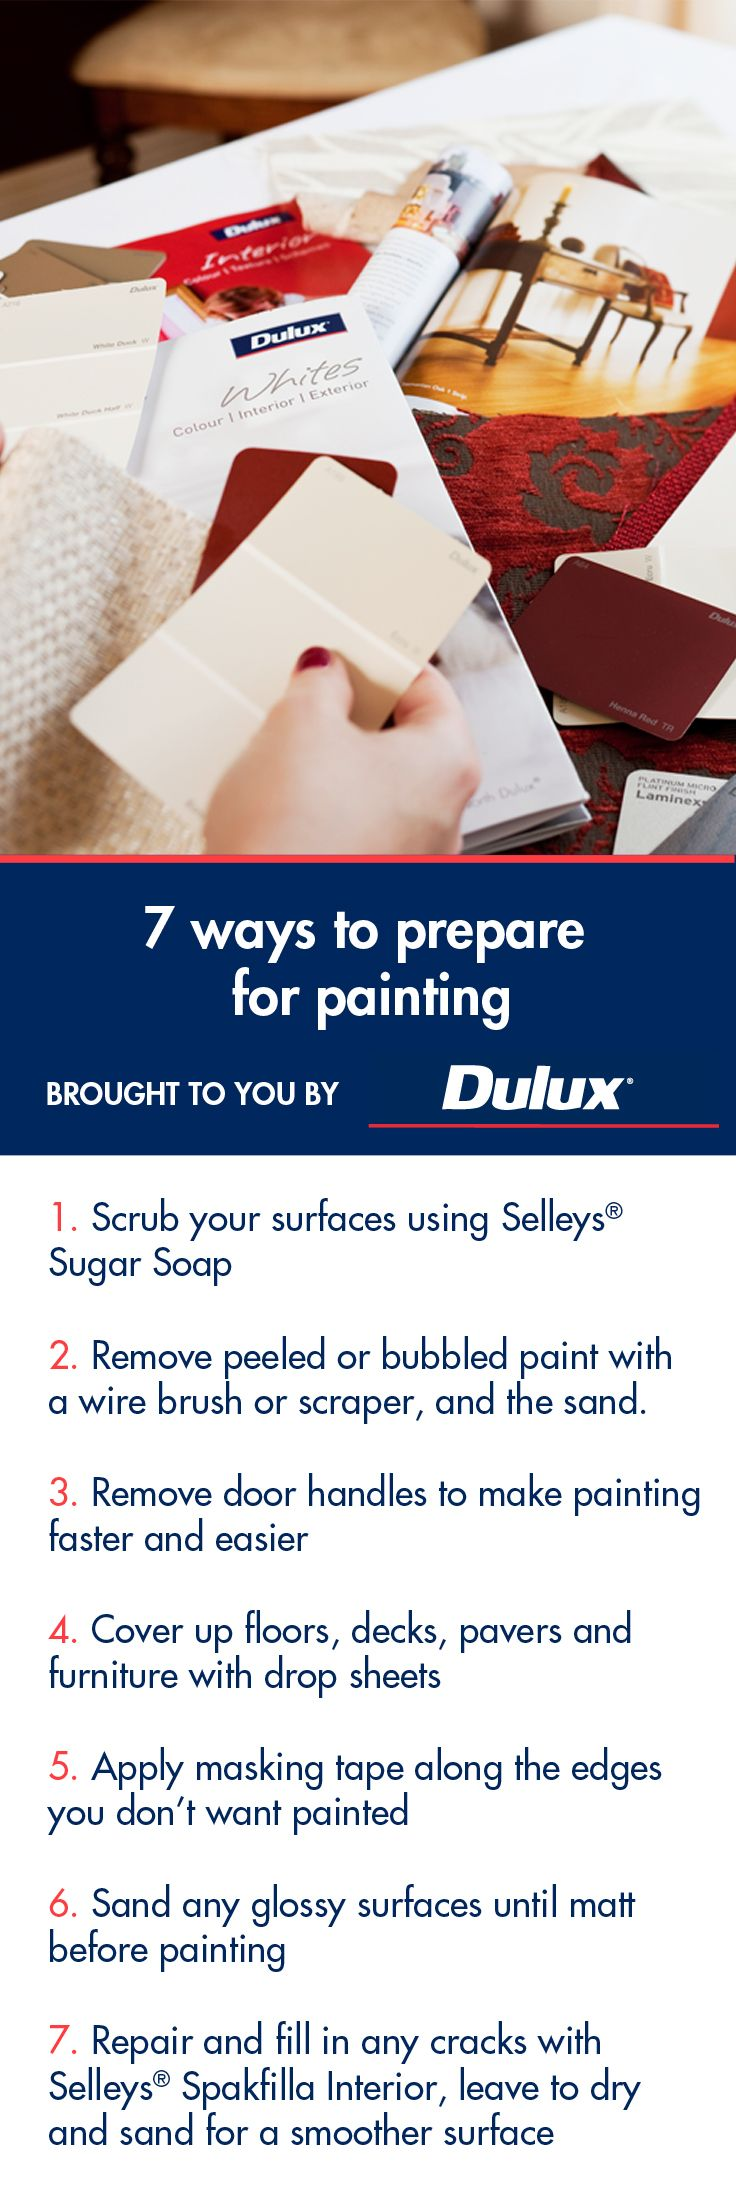 Paint preparation made easy! #Easter